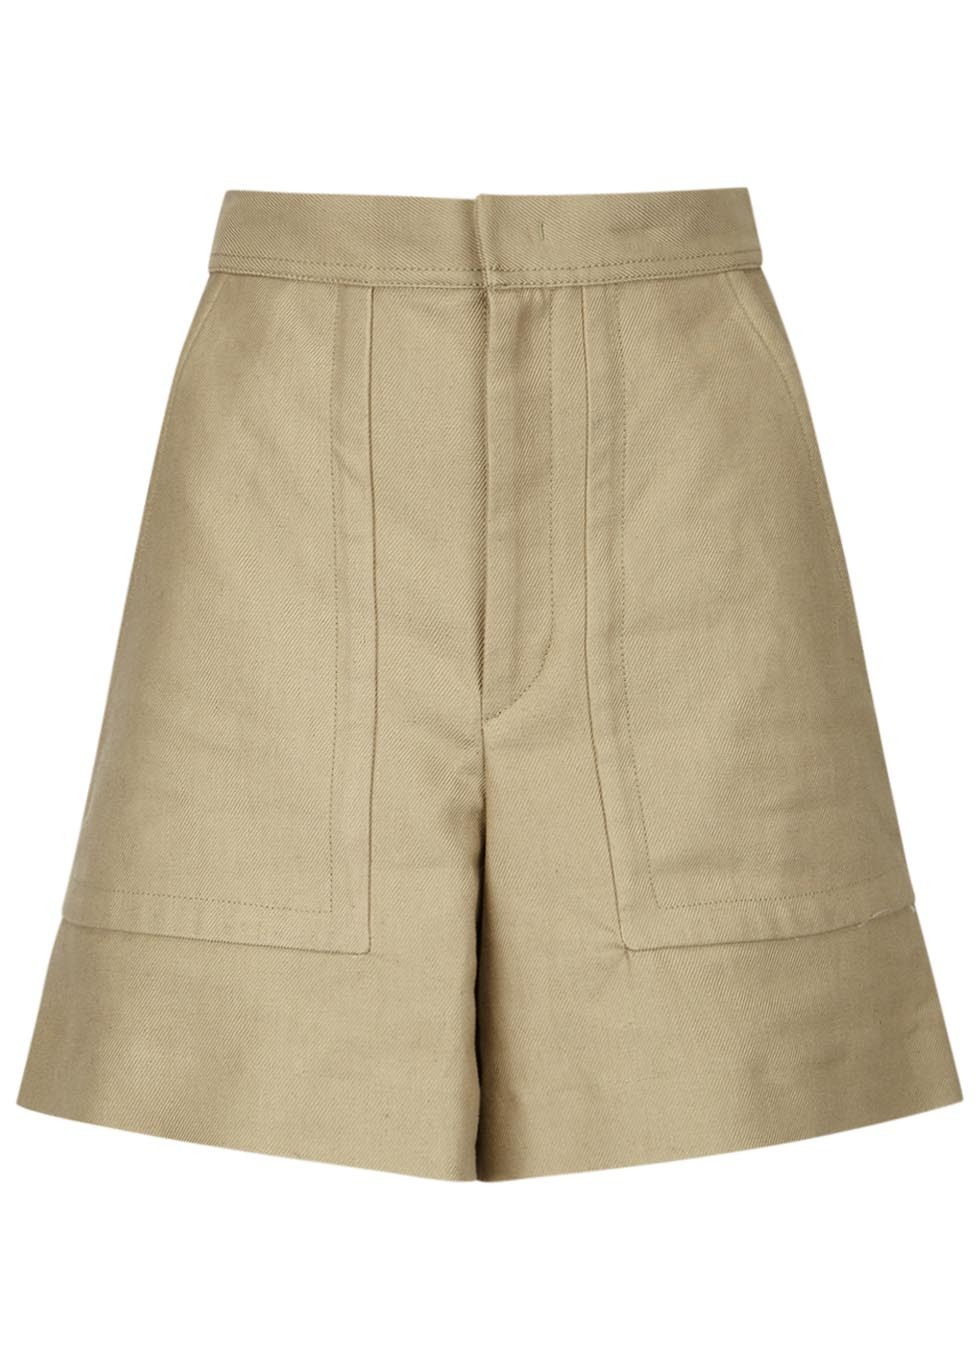 Satia Olive Cotton Blend Shorts - pattern: plain; waist: mid/regular rise; predominant colour: stone; occasions: casual; fibres: cotton - mix; texture group: cotton feel fabrics; pattern type: fabric; season: s/s 2016; style: shorts; length: mid thigh shorts; fit: standard